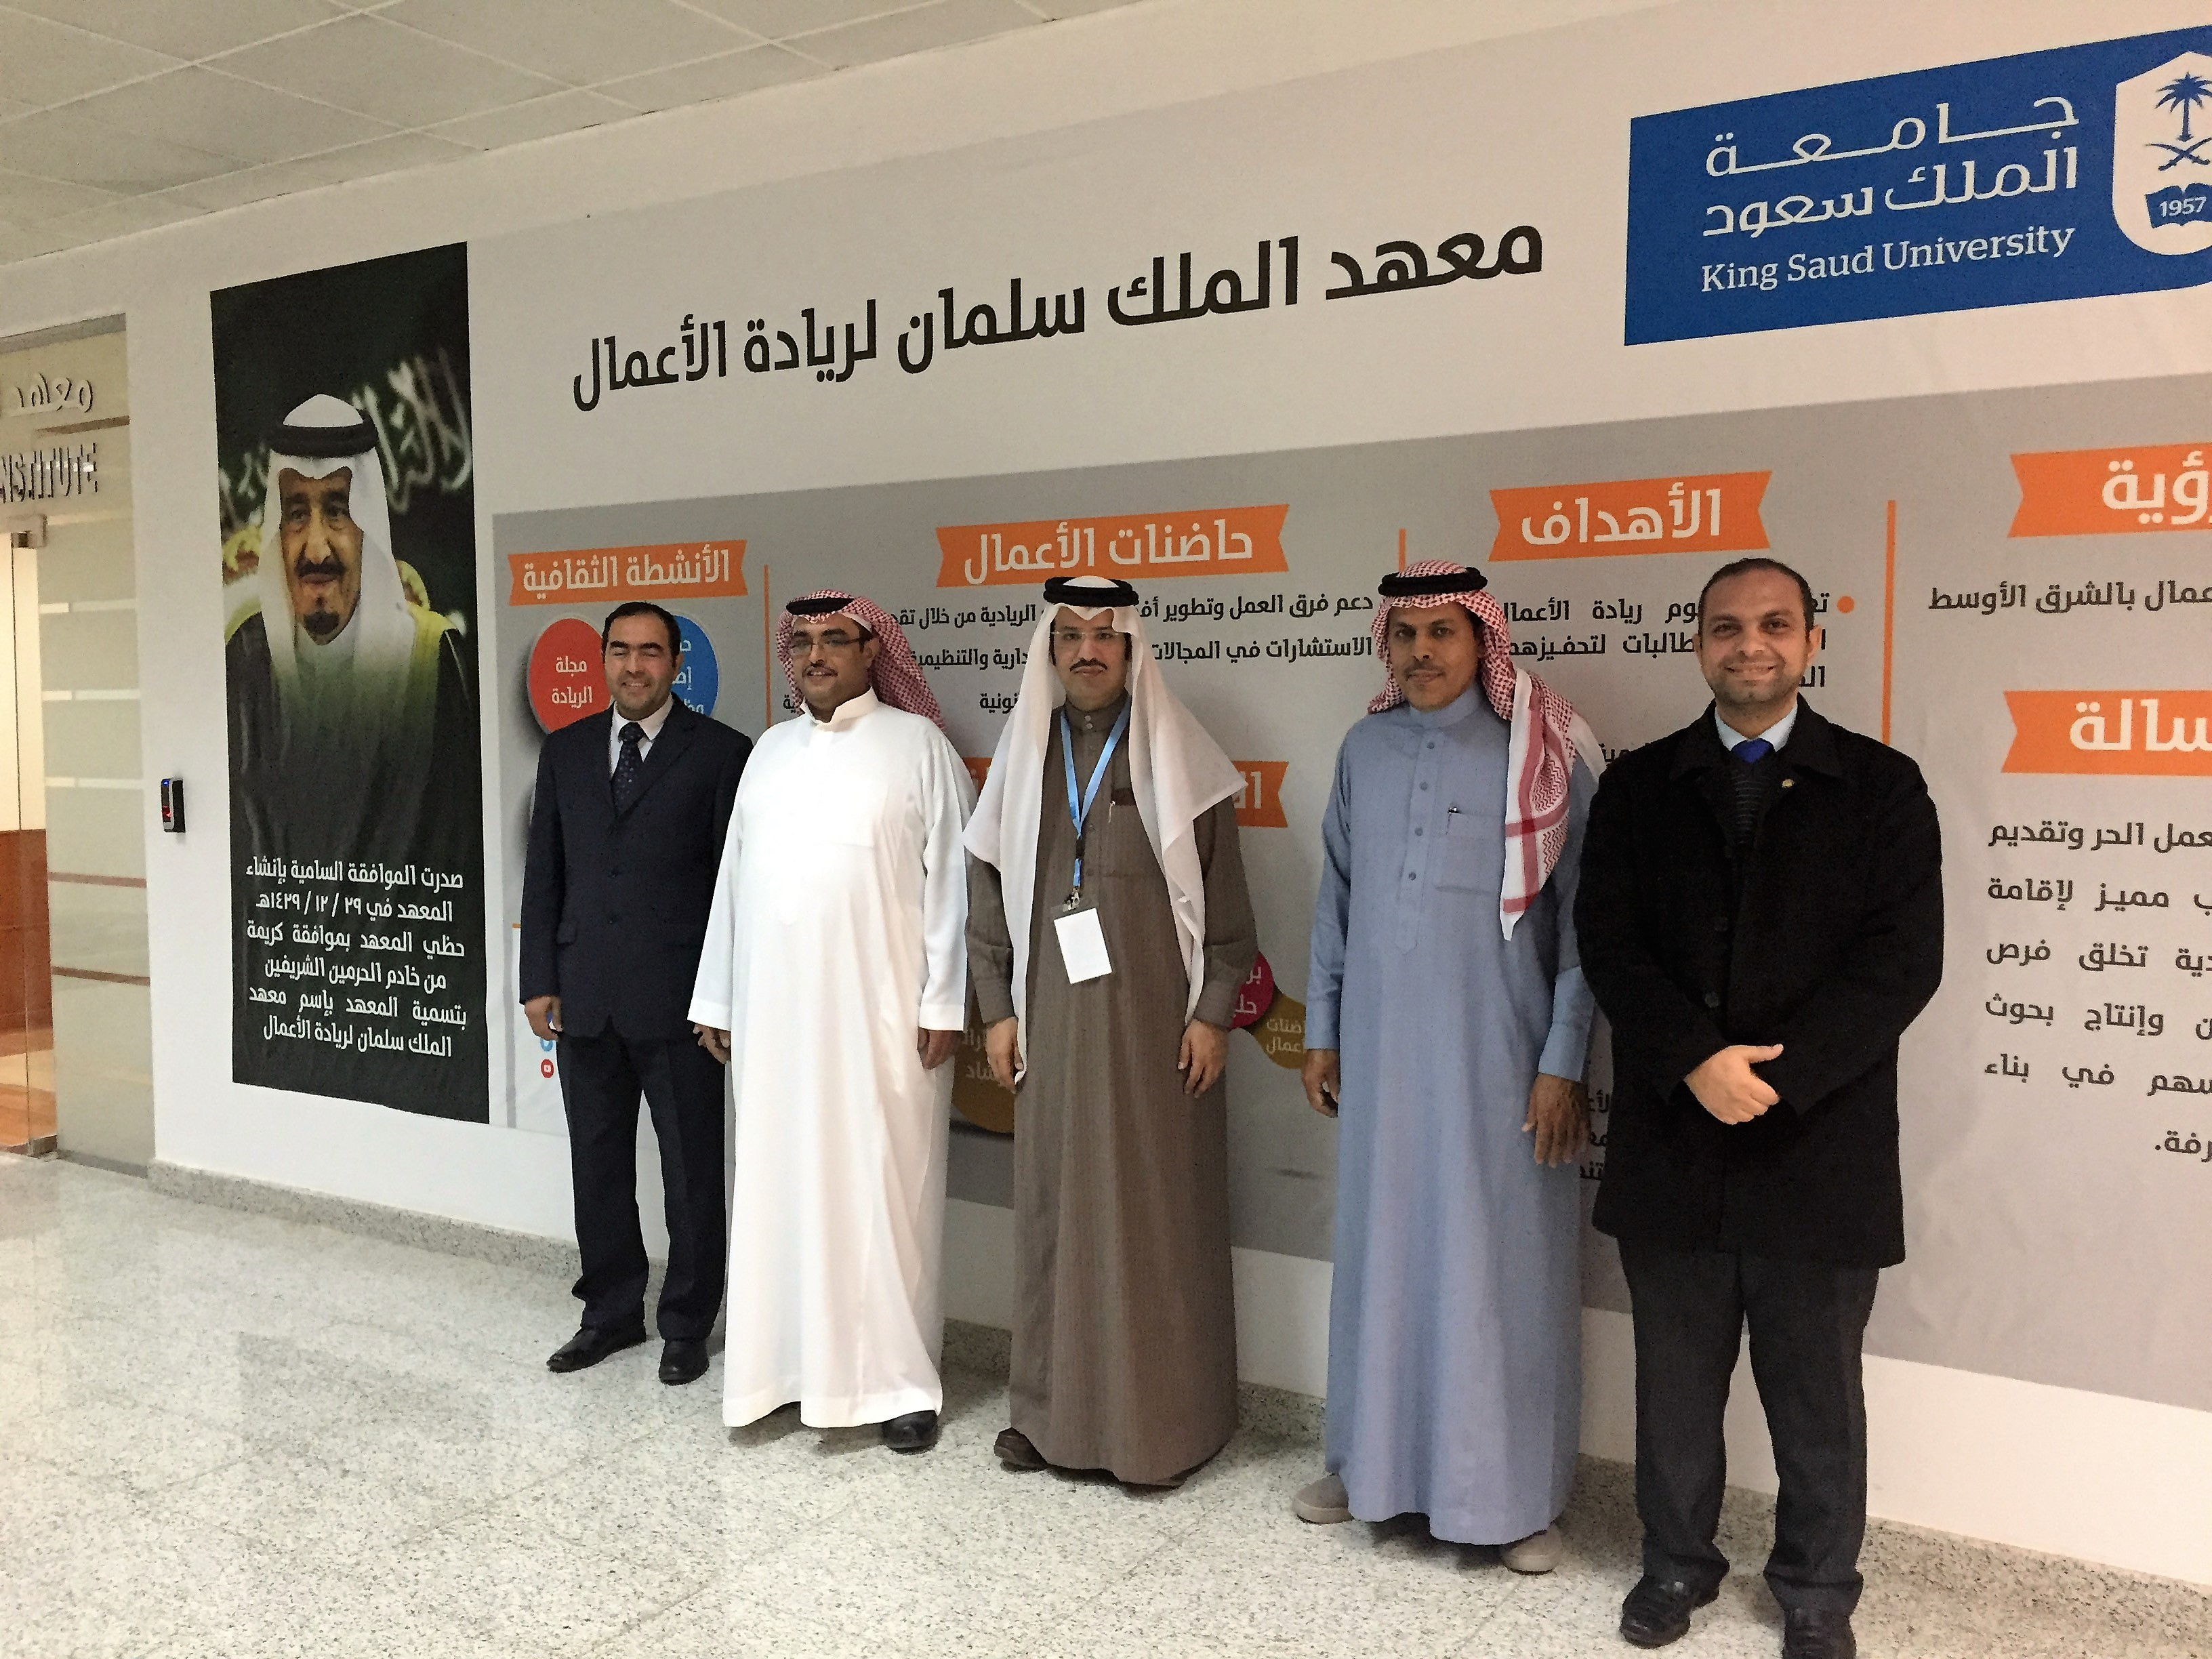 UAP and king Salman institute for Entrepreneurship discusses potential agreement